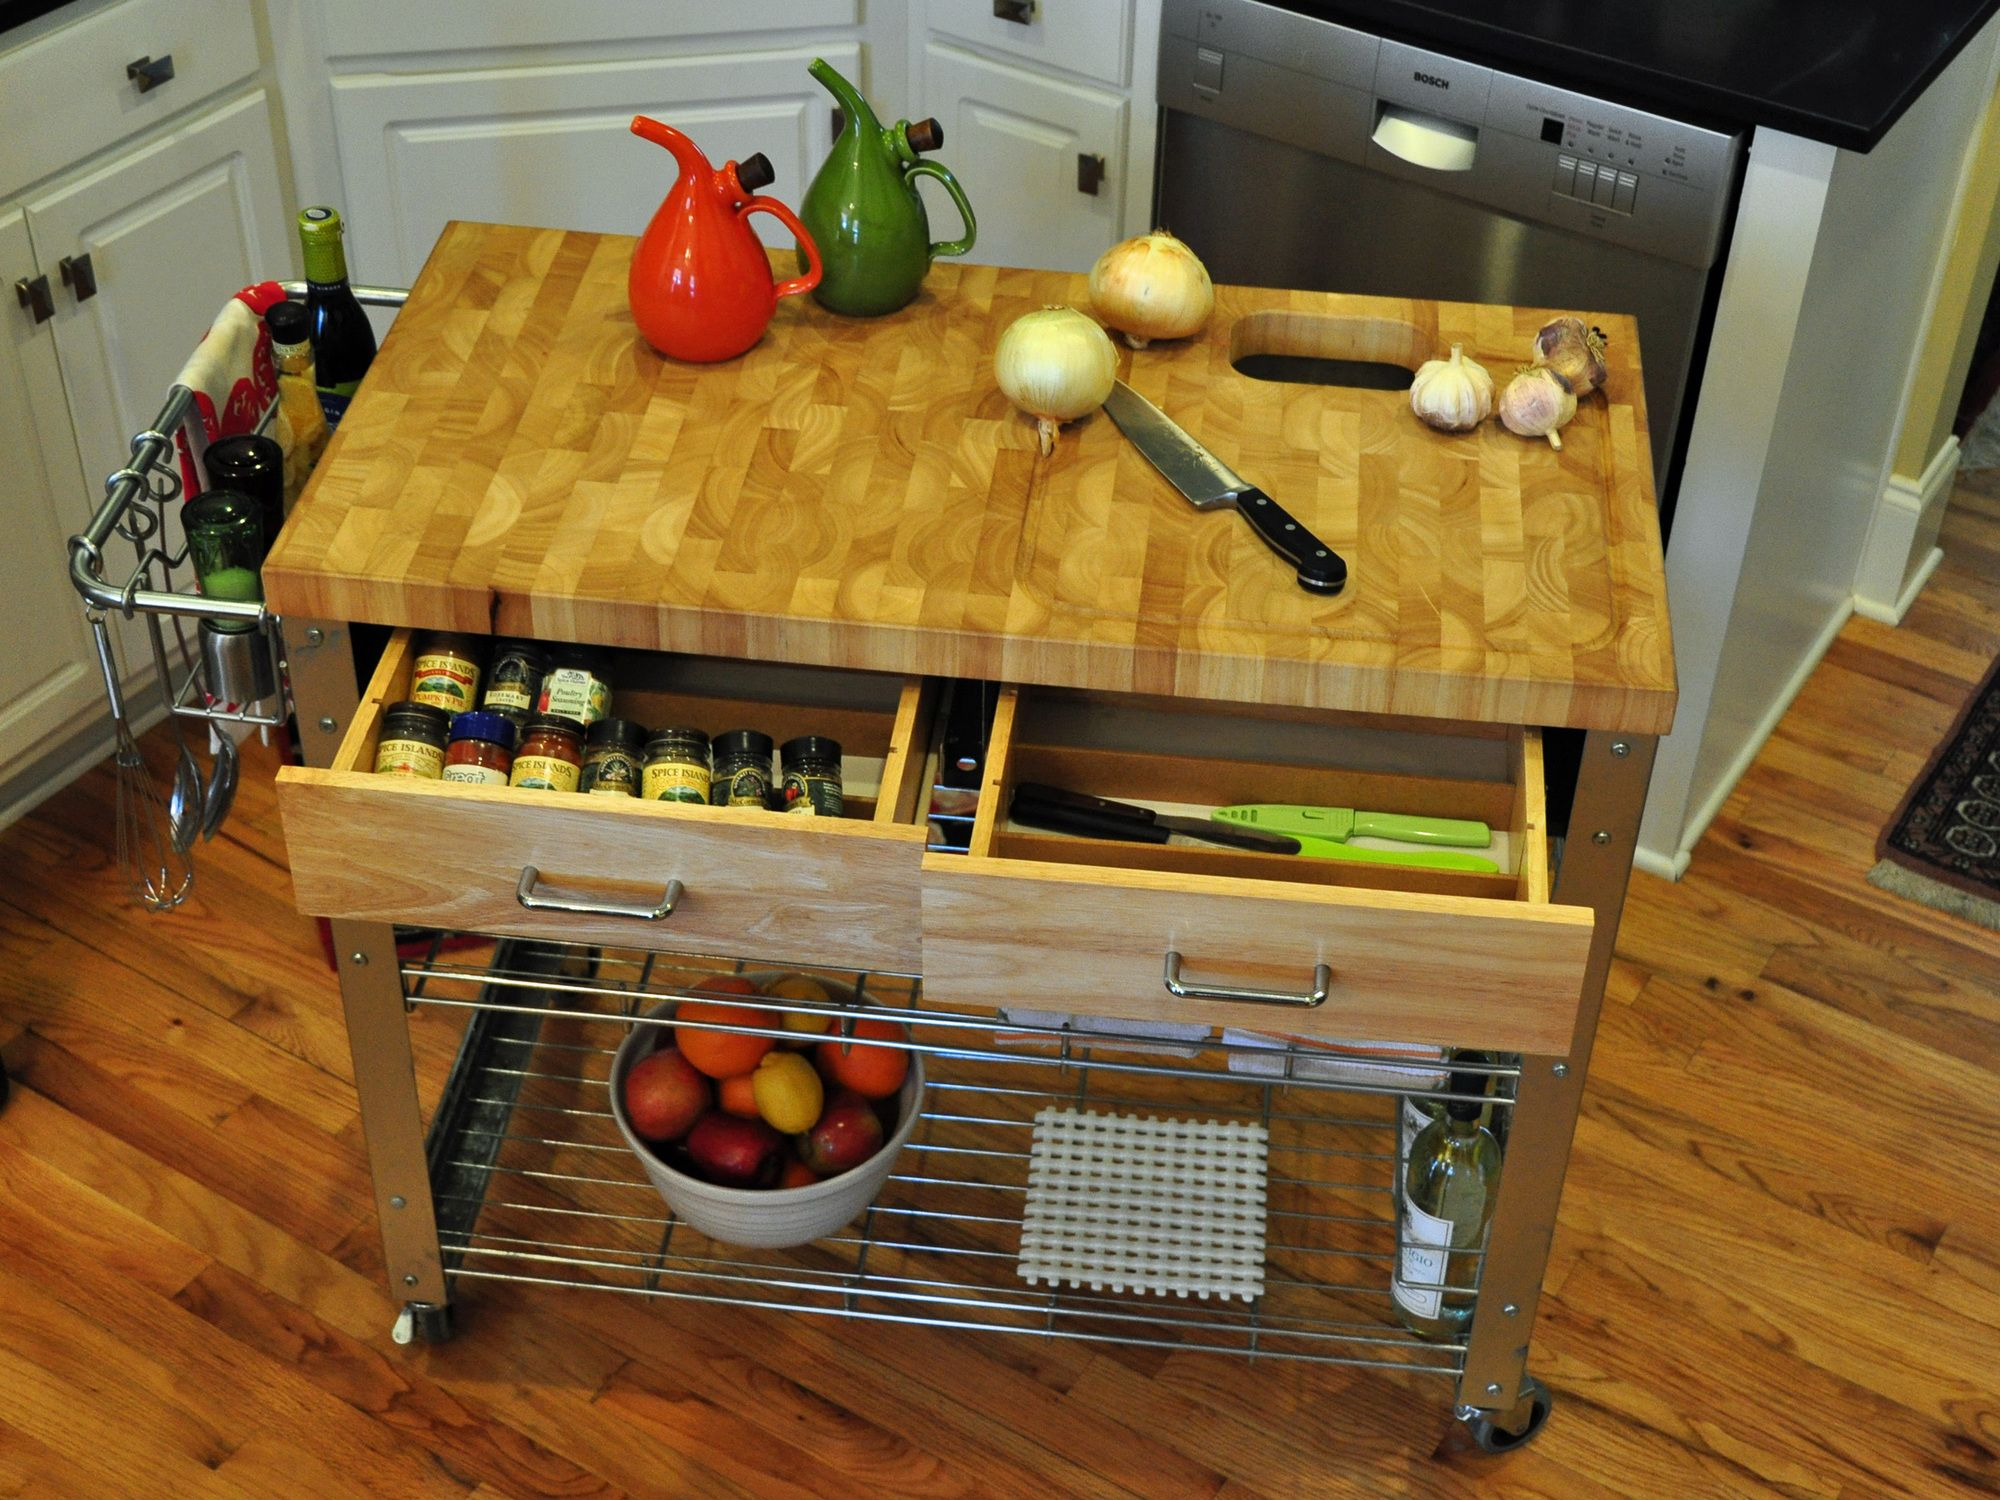 Counter Space Small Kitchen Storage Berkley Kitchen Island With Wood Top Storage Work Stations And